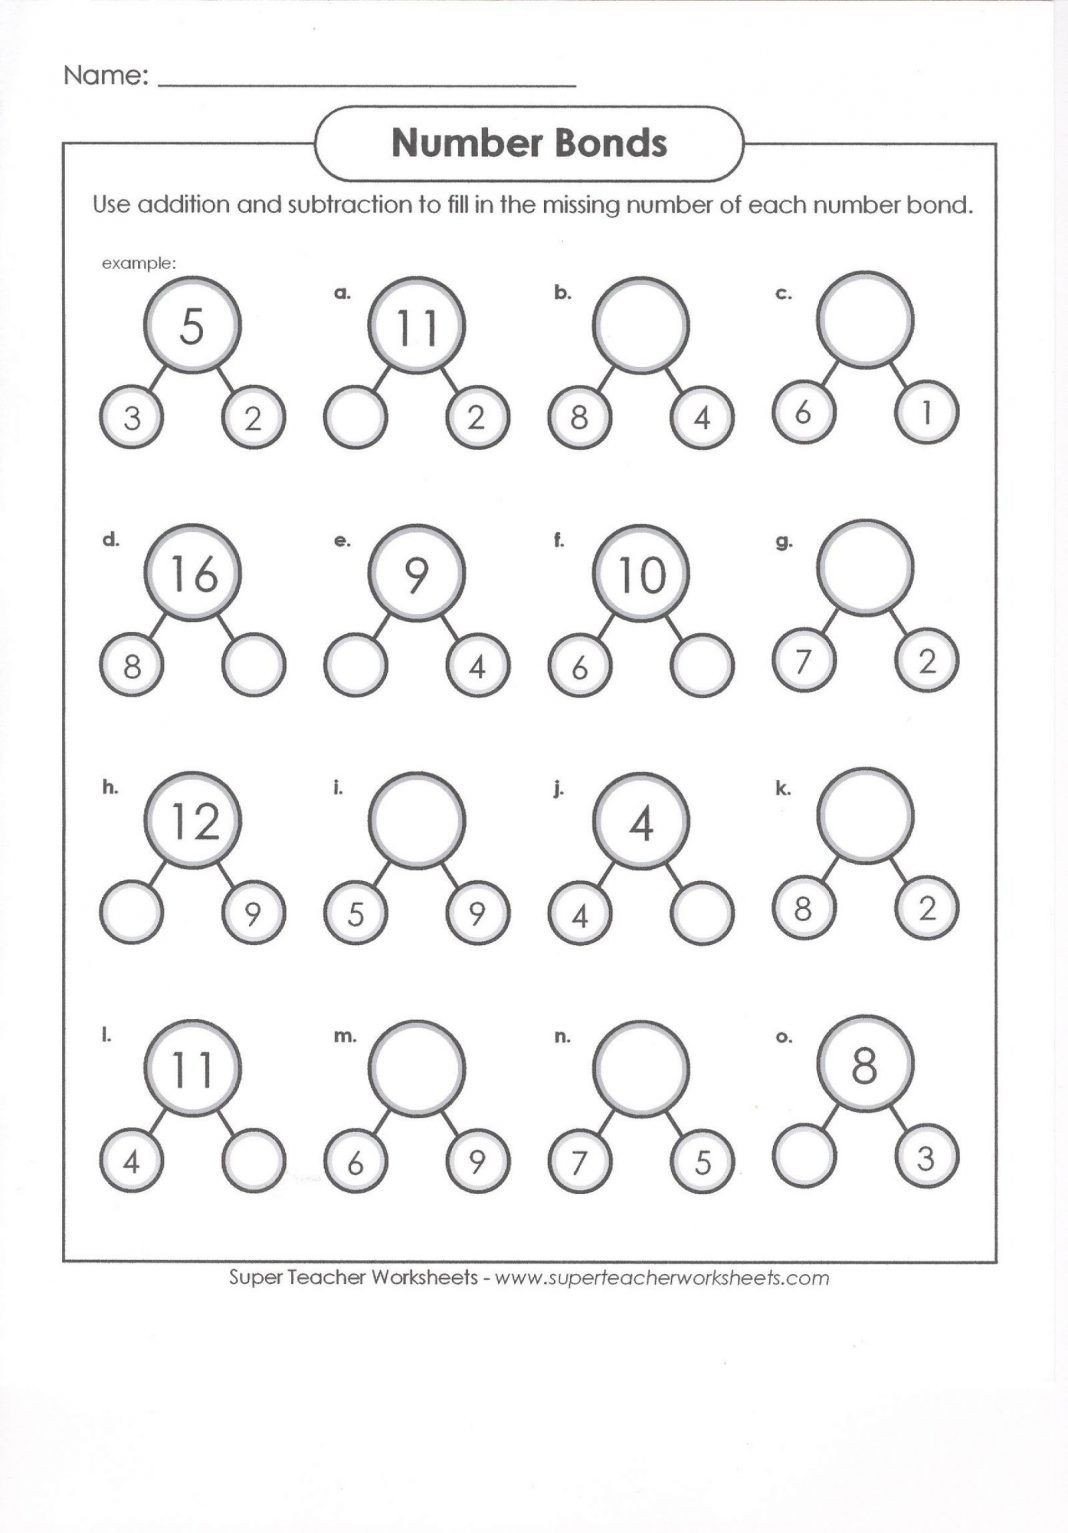 Number Bond Worksheets 1st Grade 40 Clever 1st Grade Math Worksheets Design Bacamajalah In